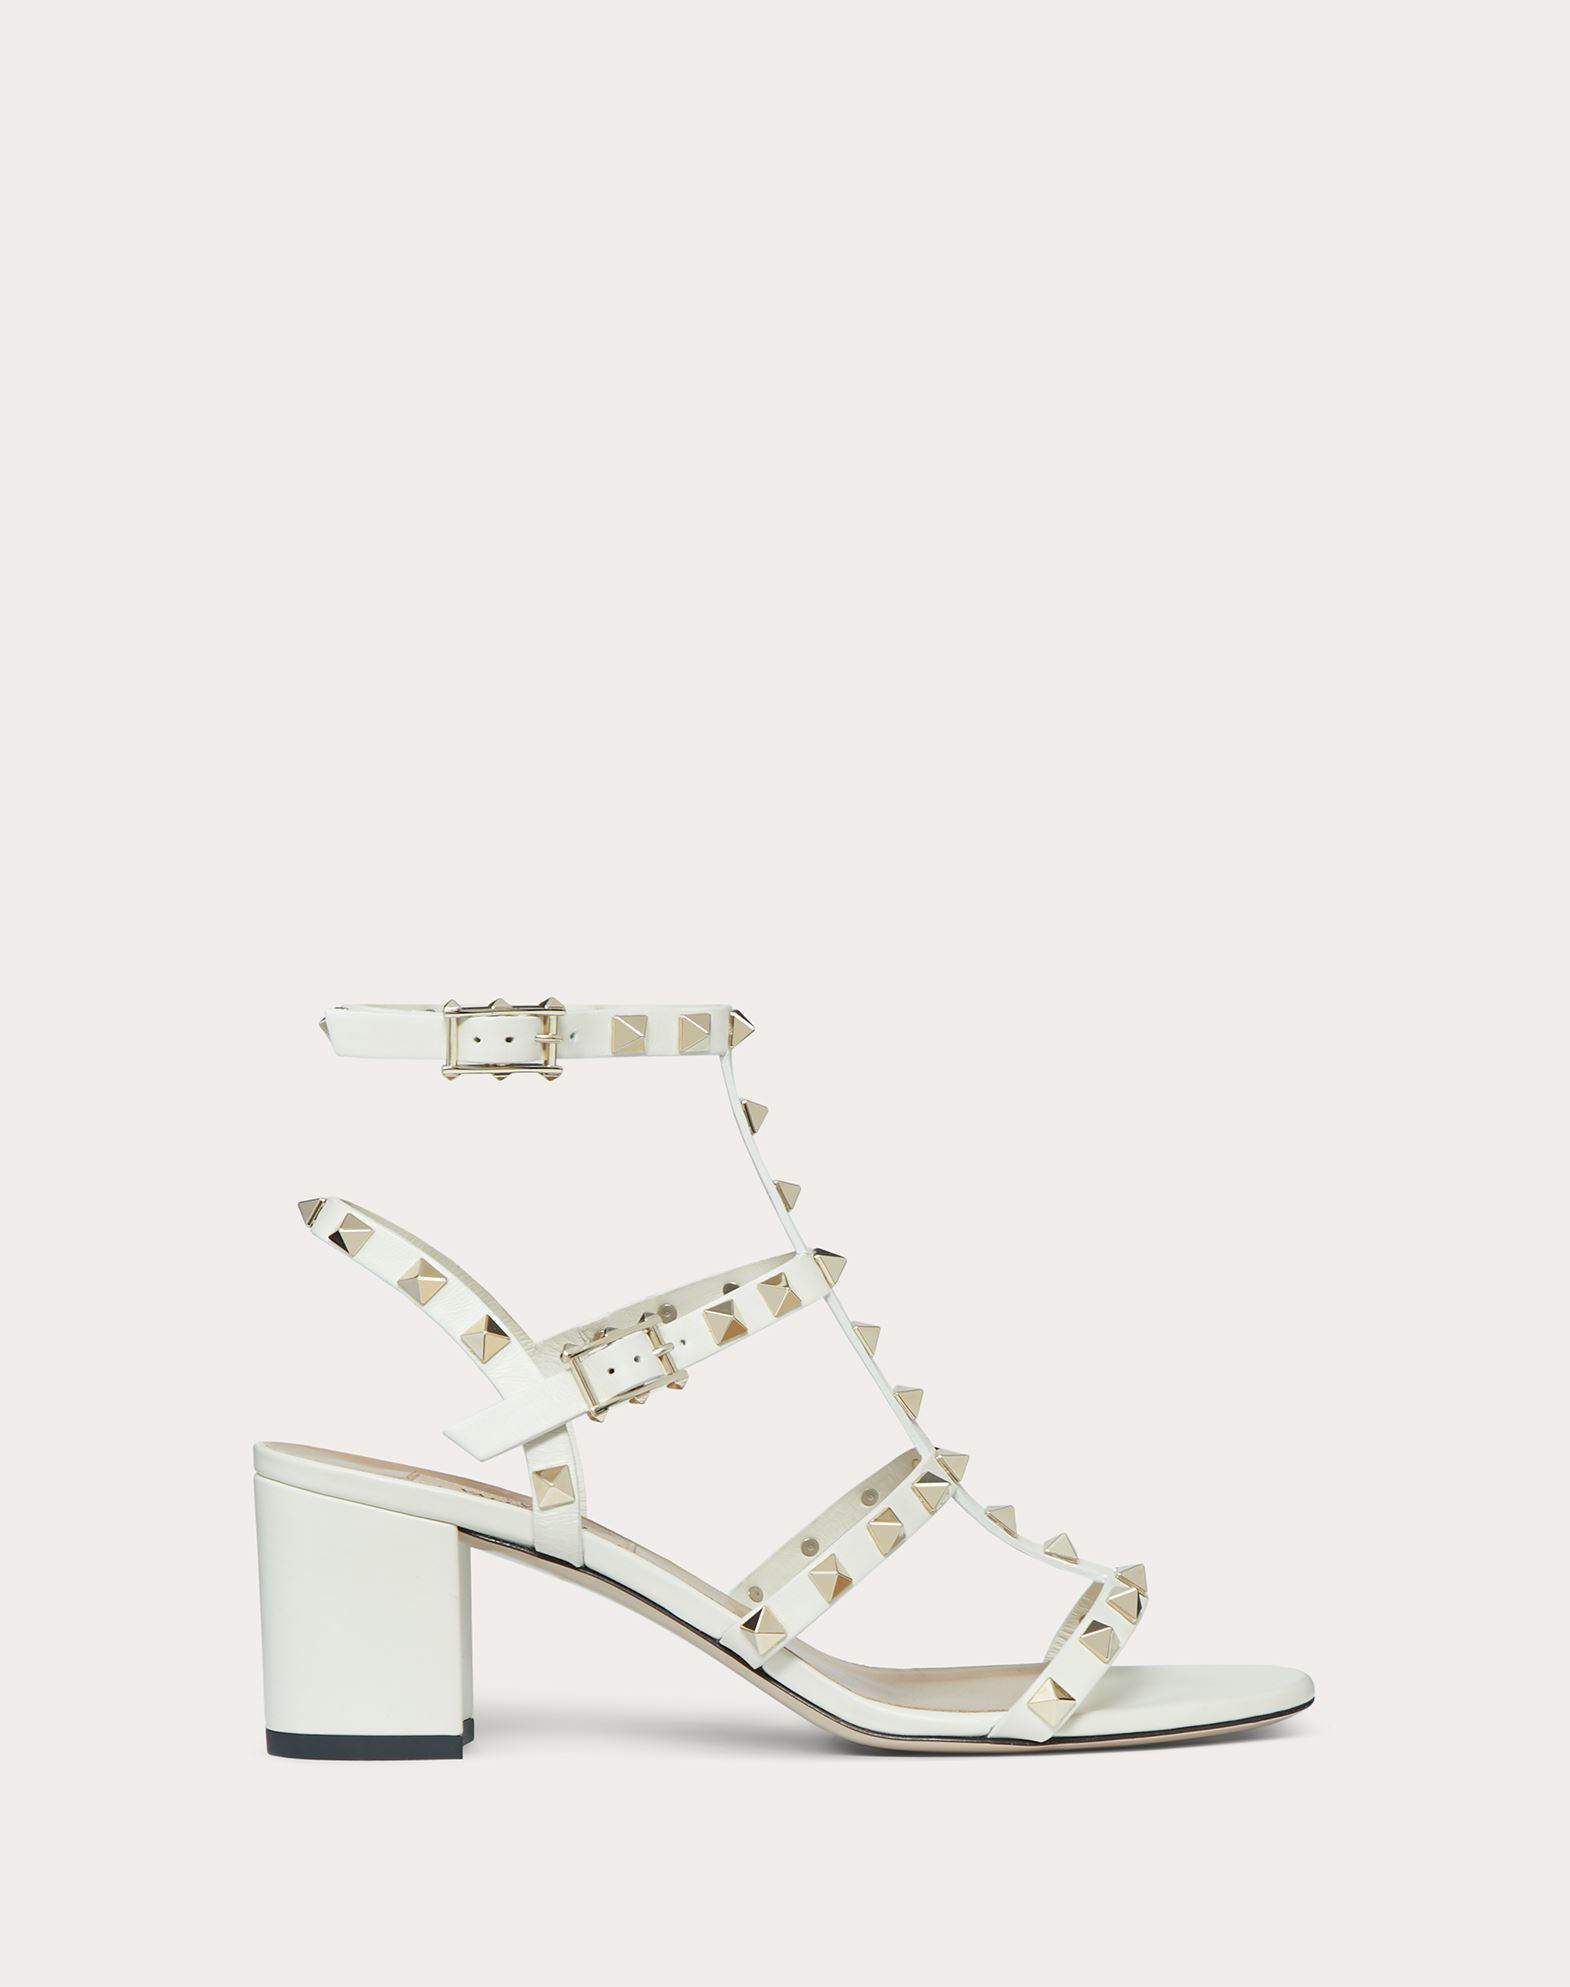 Sandalo Rockstud in vitello con cinturini 60mm